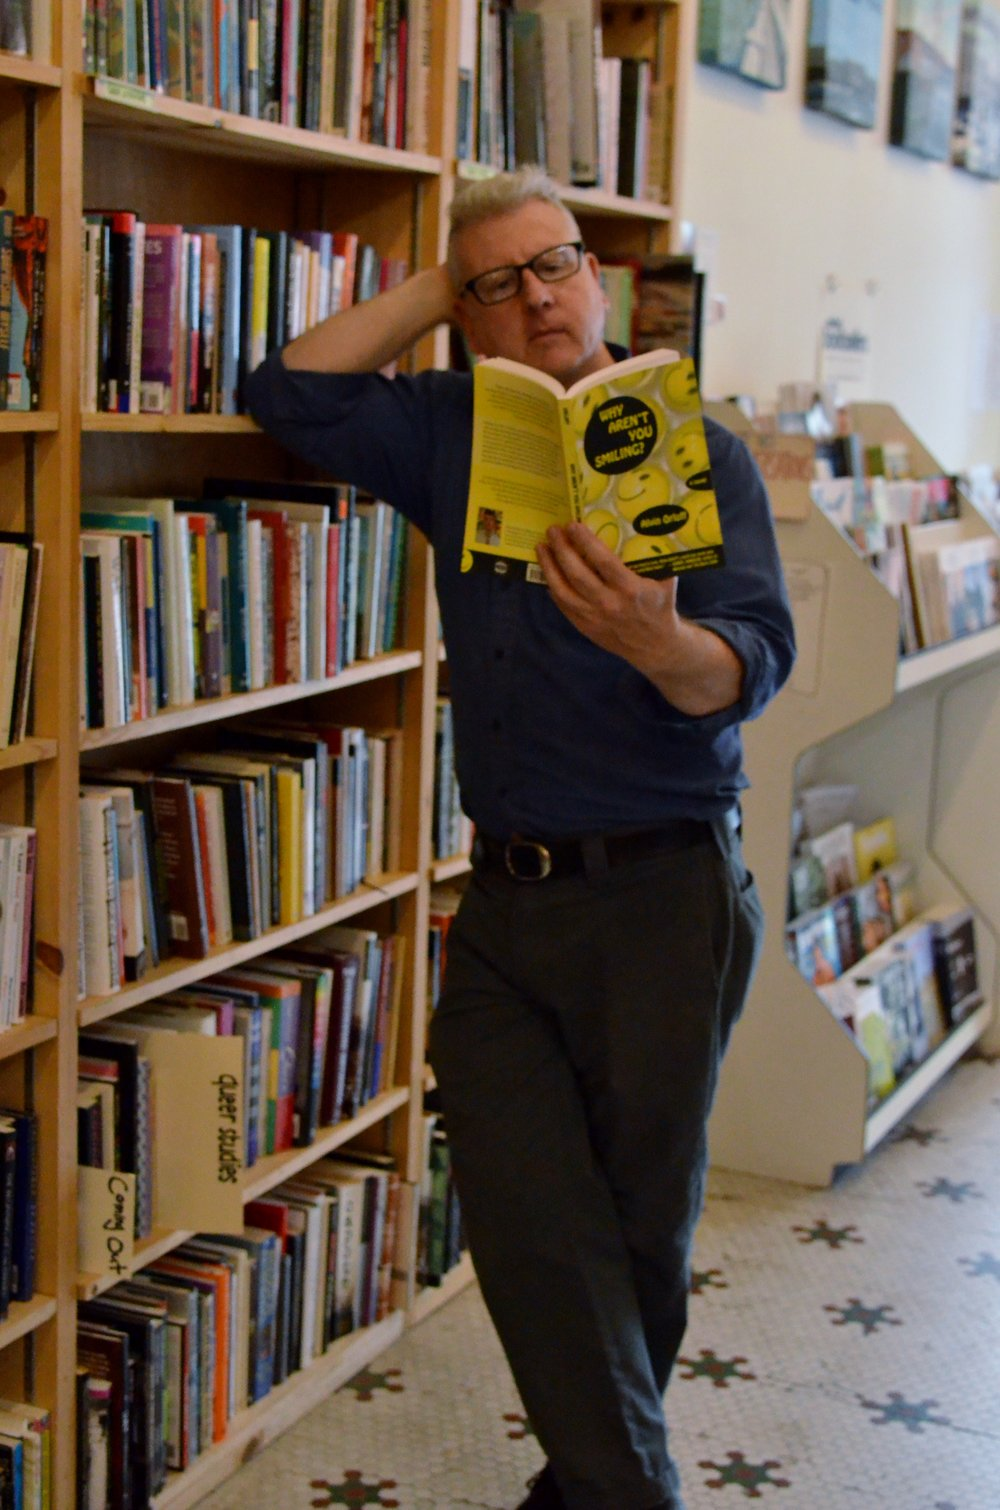 Why Aren't You Smiling?  is just one book in Castro Dog Eared's extensive collection of LGBT literature, the largest in Northern California.